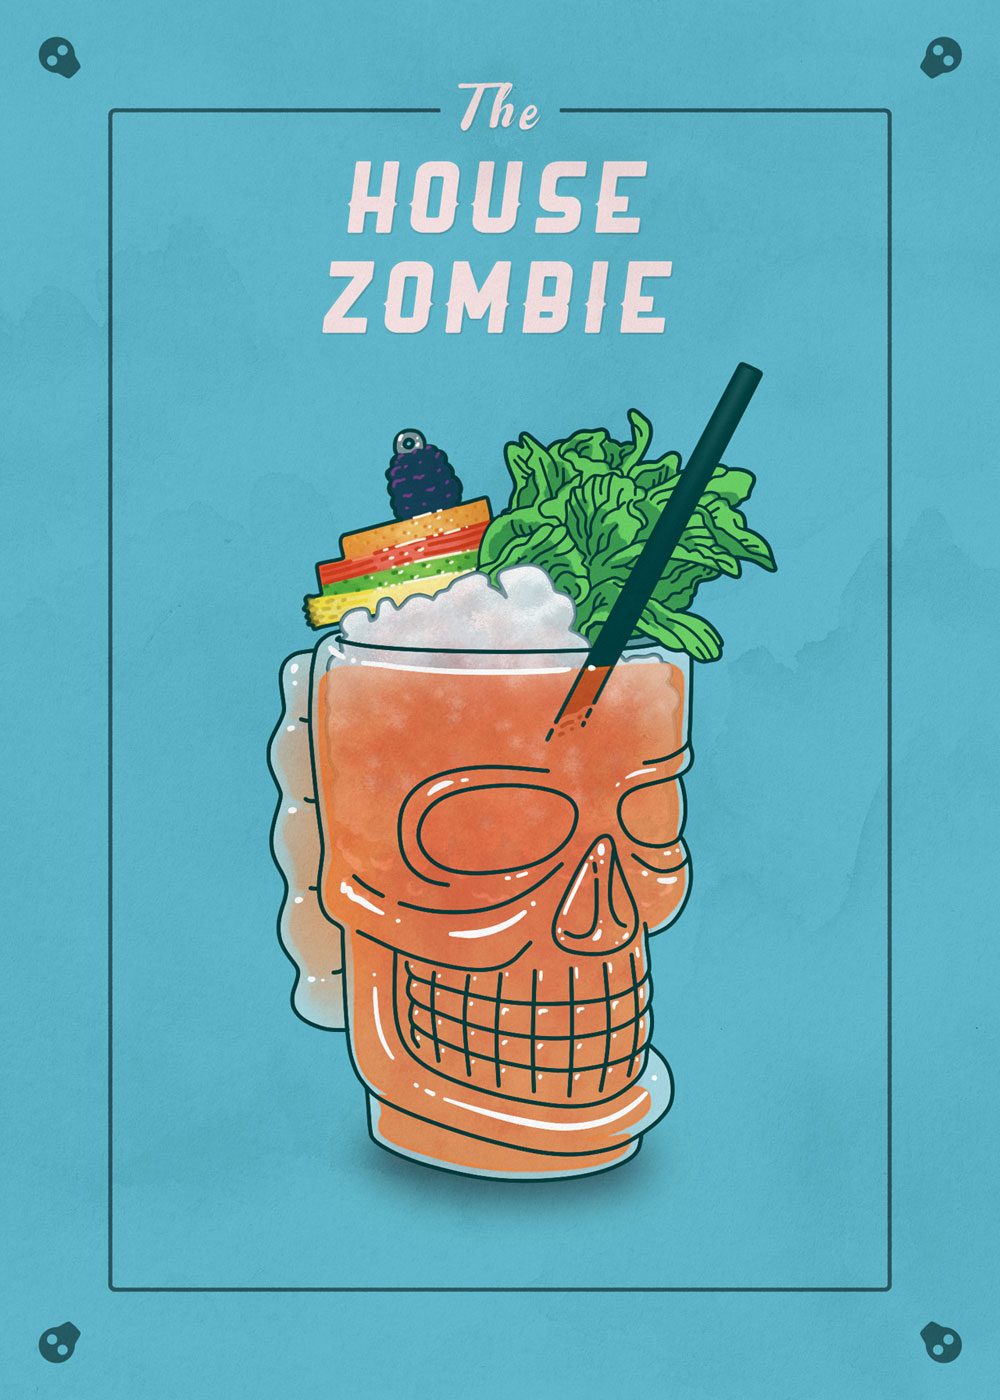 The House Zombie